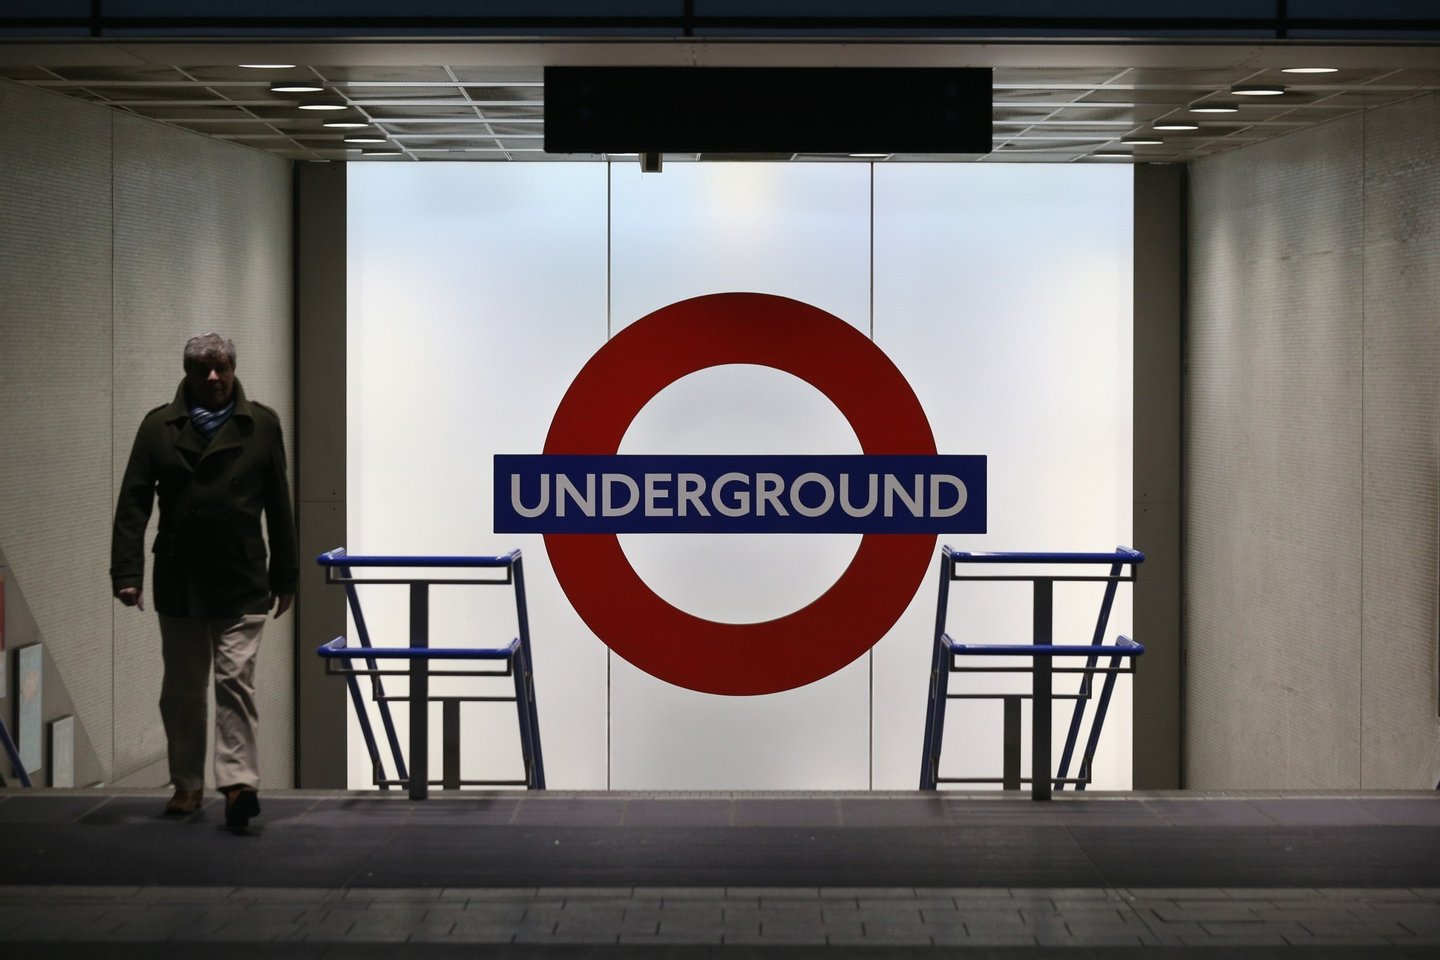 LONDON, UNITED KINGDOM - DECEMBER 23: Members of the public use the London Underground in Kings Cross Station on December 23, 2013 in London, England. With two days until Christmas day, heavy rain and strong winds are affecting much of southern England with numerous Met office weather warnings in place. Road, rail and ferry routes have been affected by the weather with gusts of wind and flooding anticipated in some areas. (Photo by Oli Scarff/Getty Images)